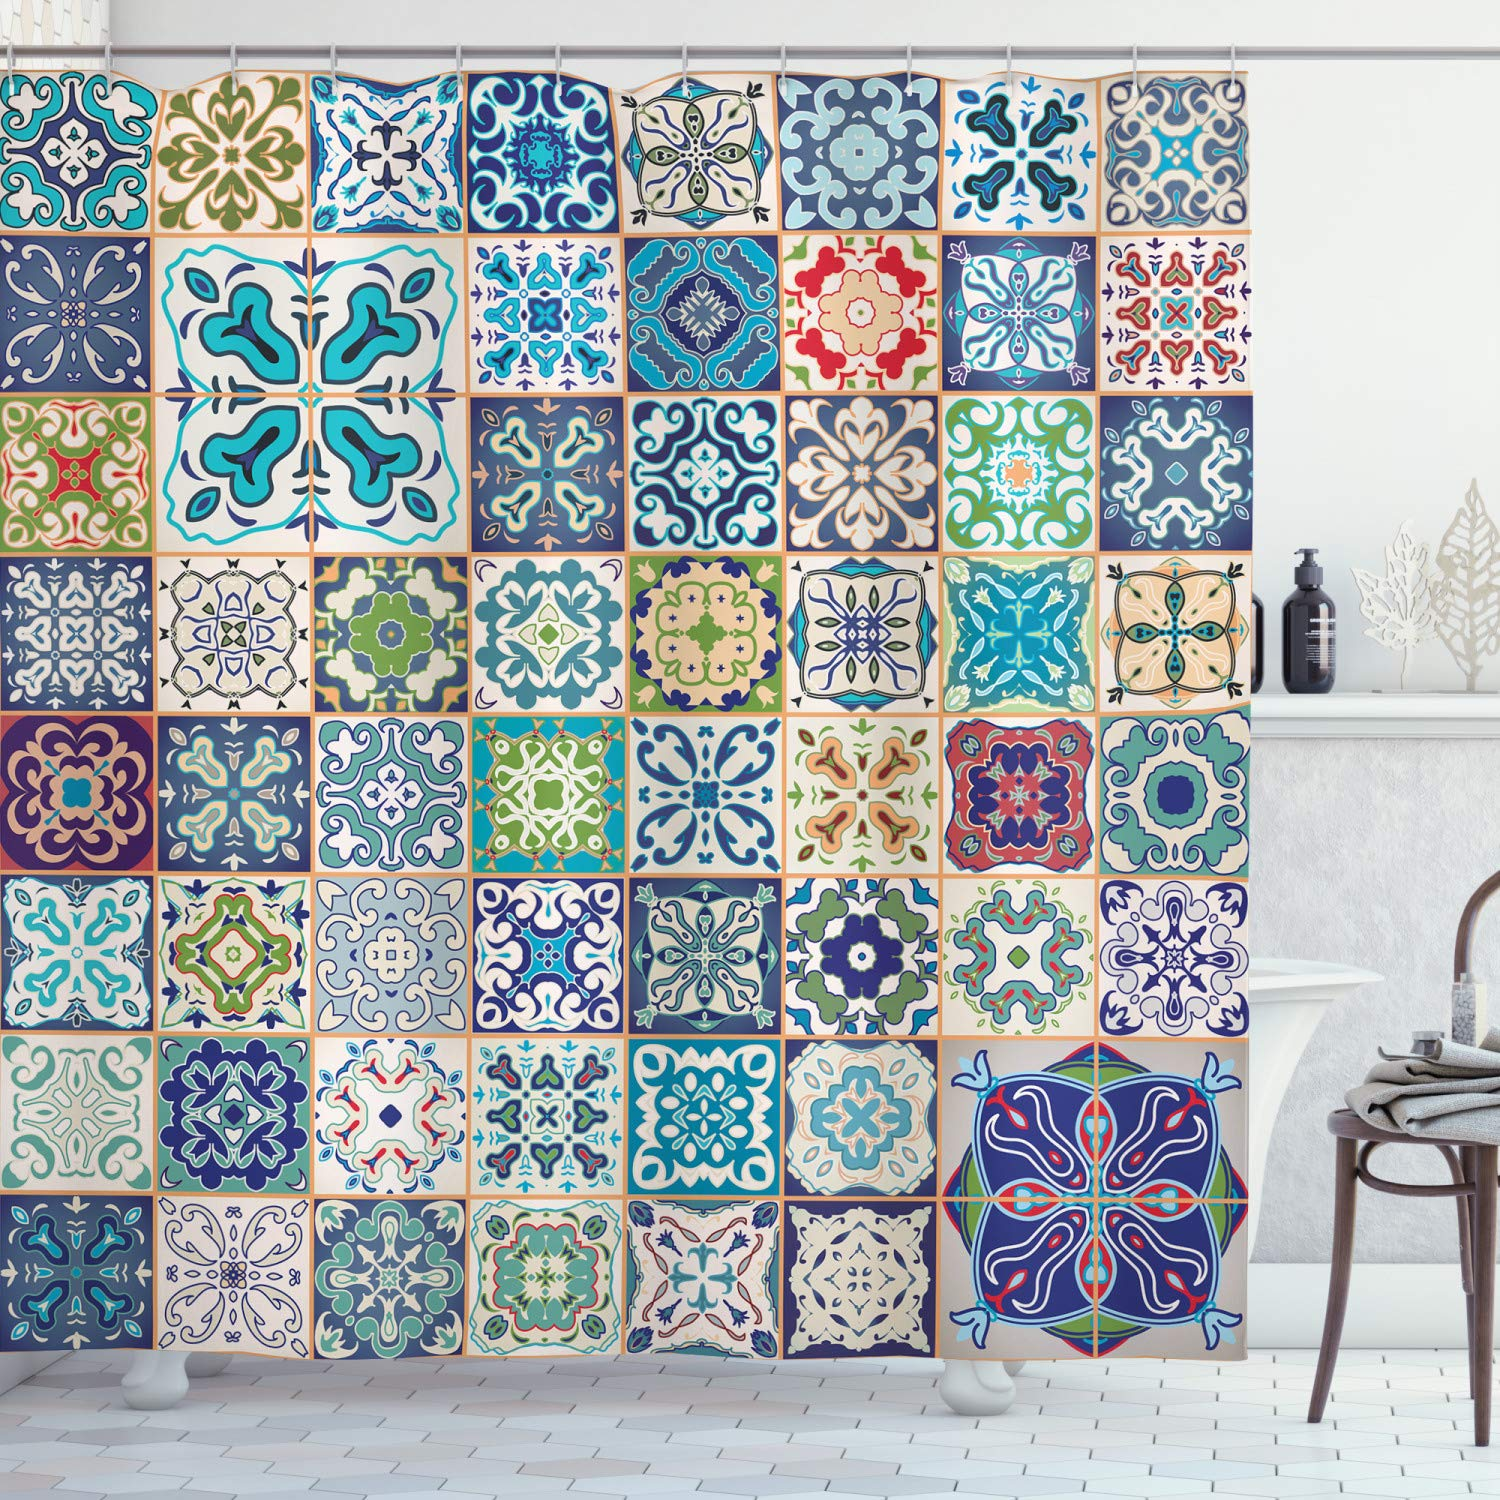 """Ambesonne Moroccan Shower Curtain, Floral Patchwork Design with Mediterranean Symbolic Artisan Work, Cloth Fabric Bathroom Decor Set with Hooks, 75"""" Long, Turquoise Navy"""